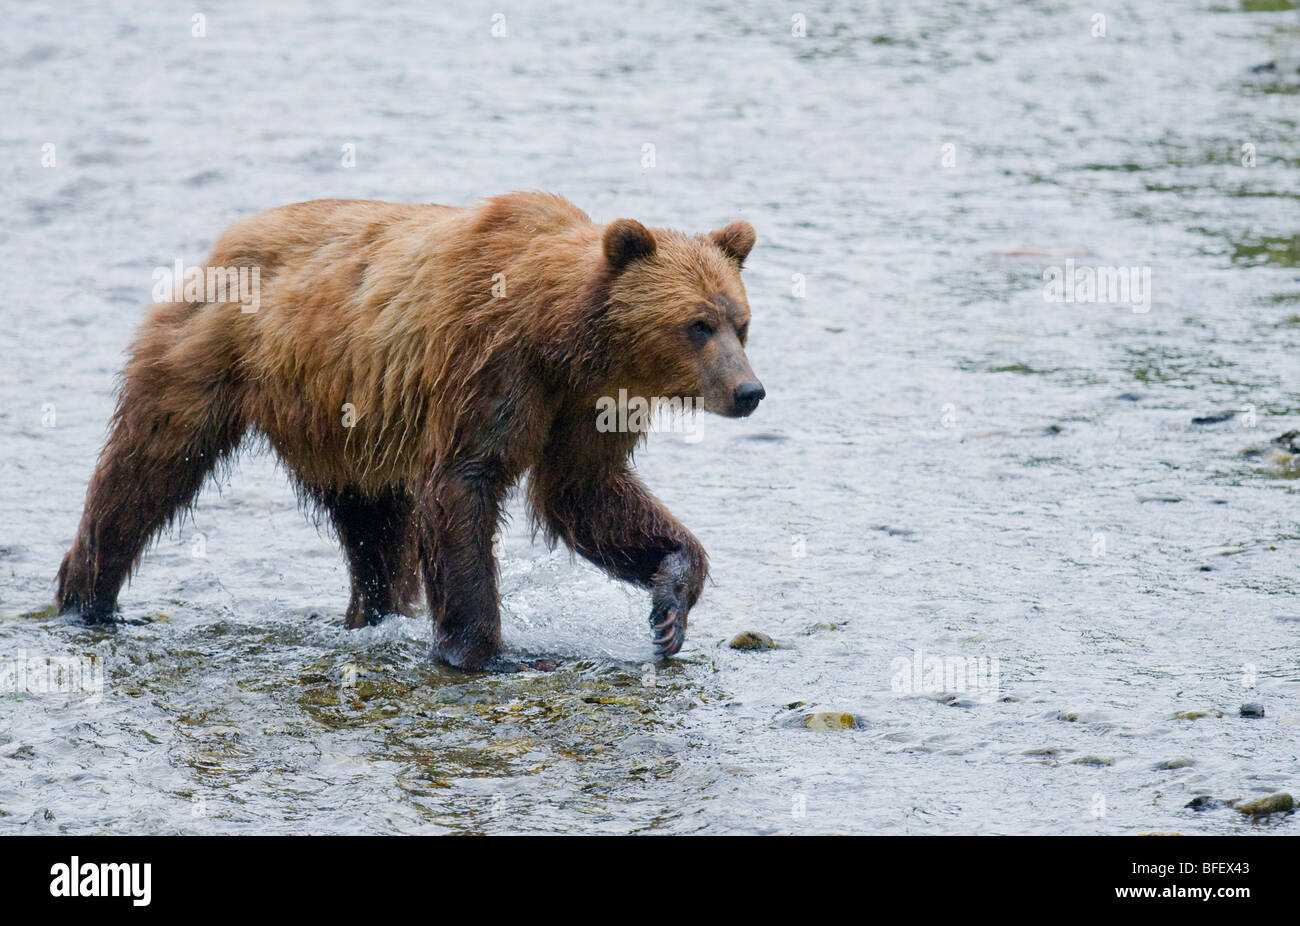 Grizzly Bear (Ursus arctos horribilis) Adult watching for salmon in spawning stream. In costal areas grizzliy frequents - Stock Image